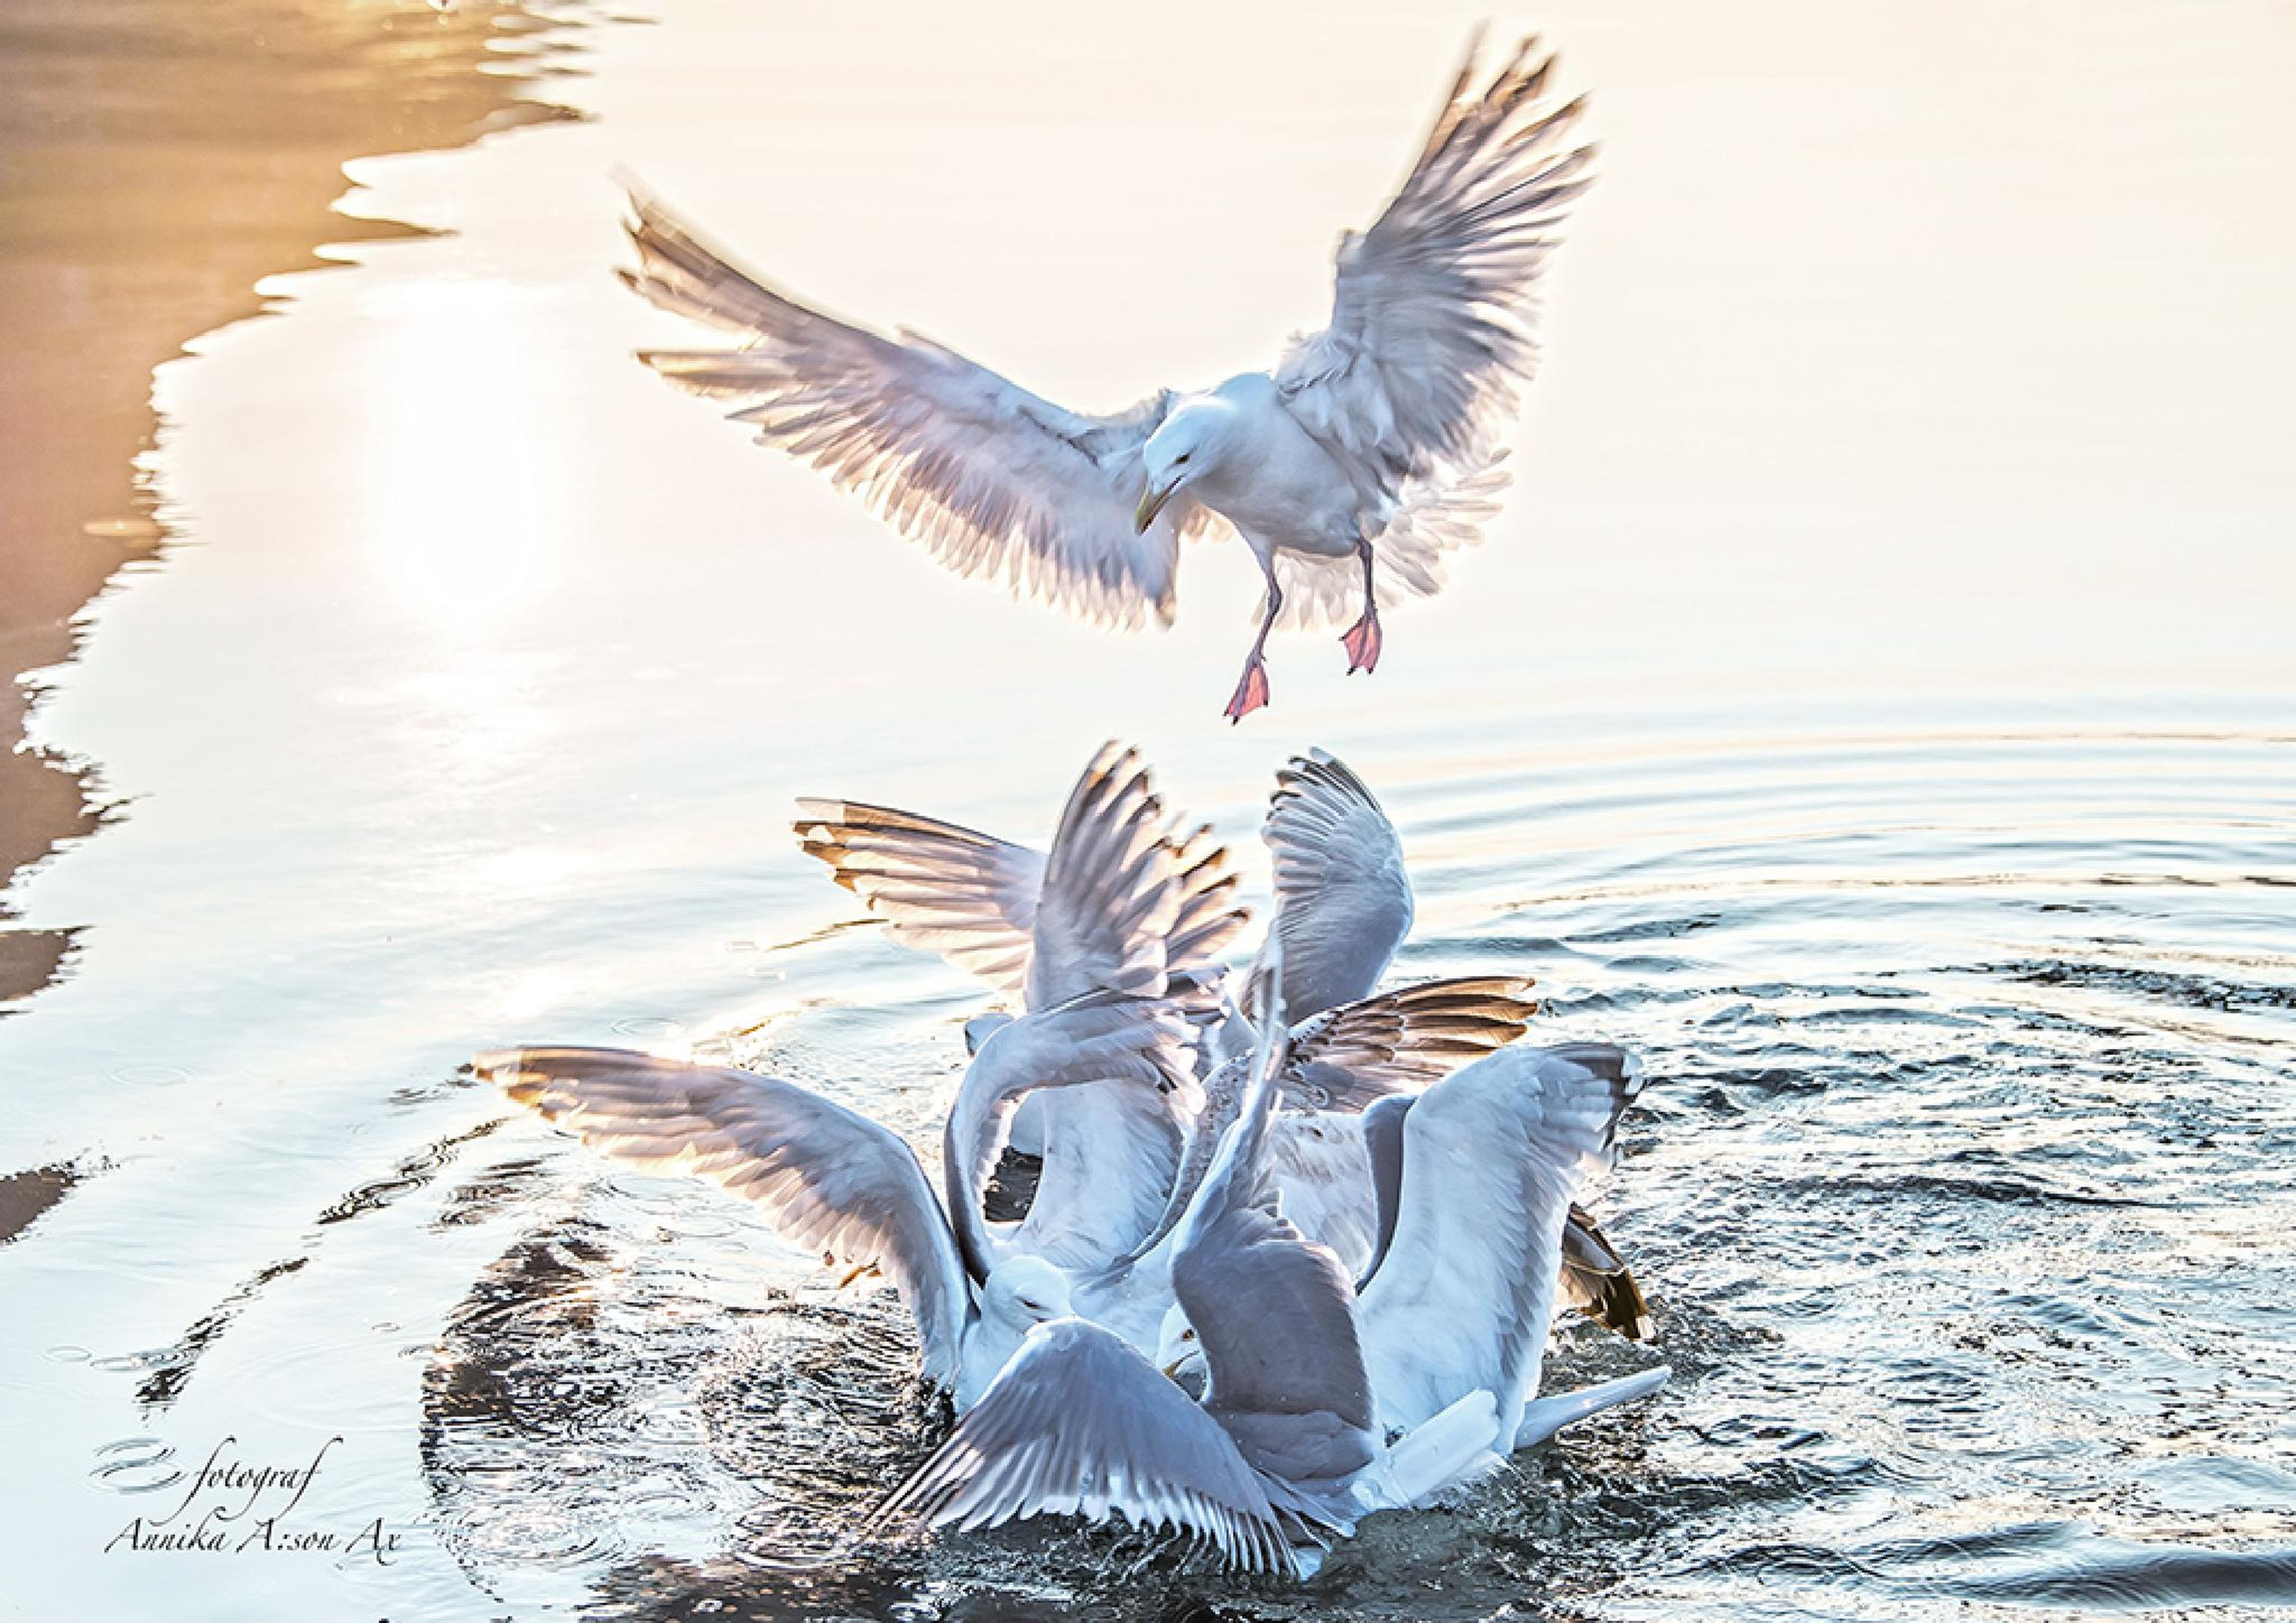 bird, animal themes, animals in the wild, wildlife, spread wings, flying, water, seagull, flock of birds, one animal, nature, lake, clear sky, day, full length, sky, two animals, mid-air, outdoors